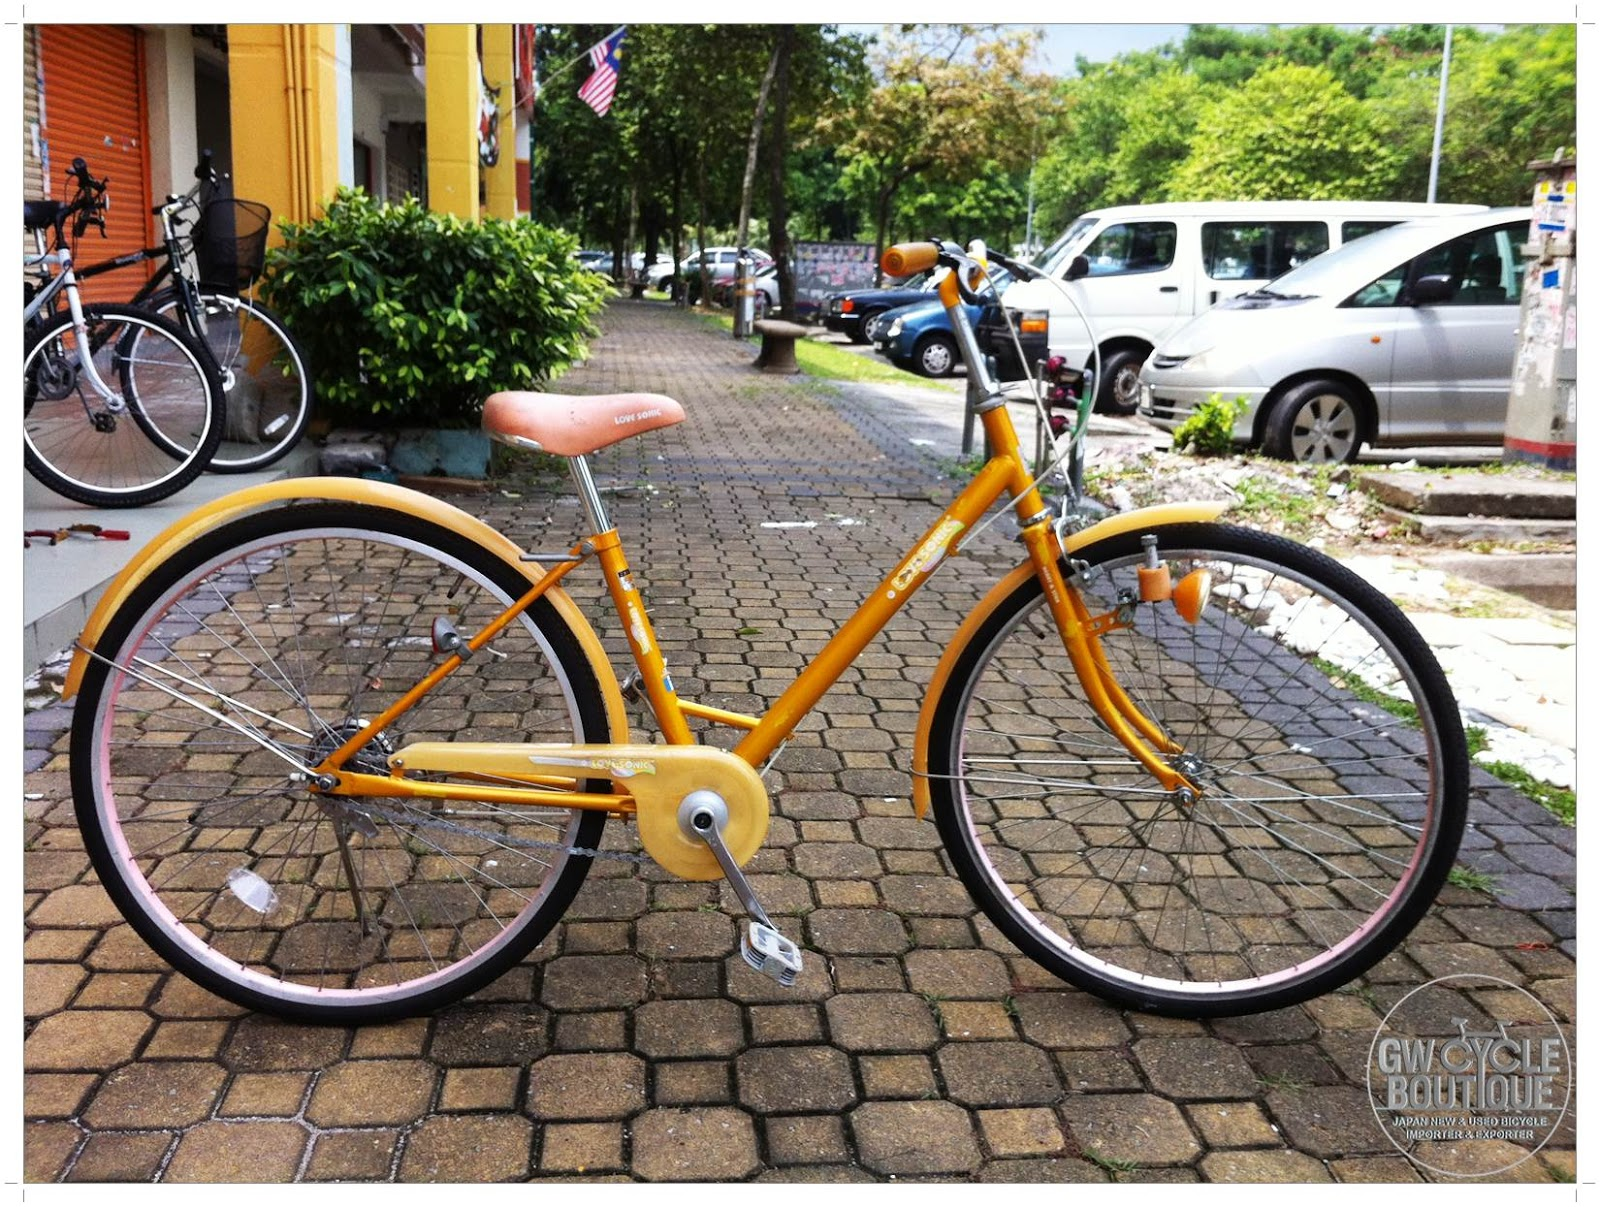 """GW Cycle Boutique: 26"""" Japan Preloved Classic City Bicycle ..."""